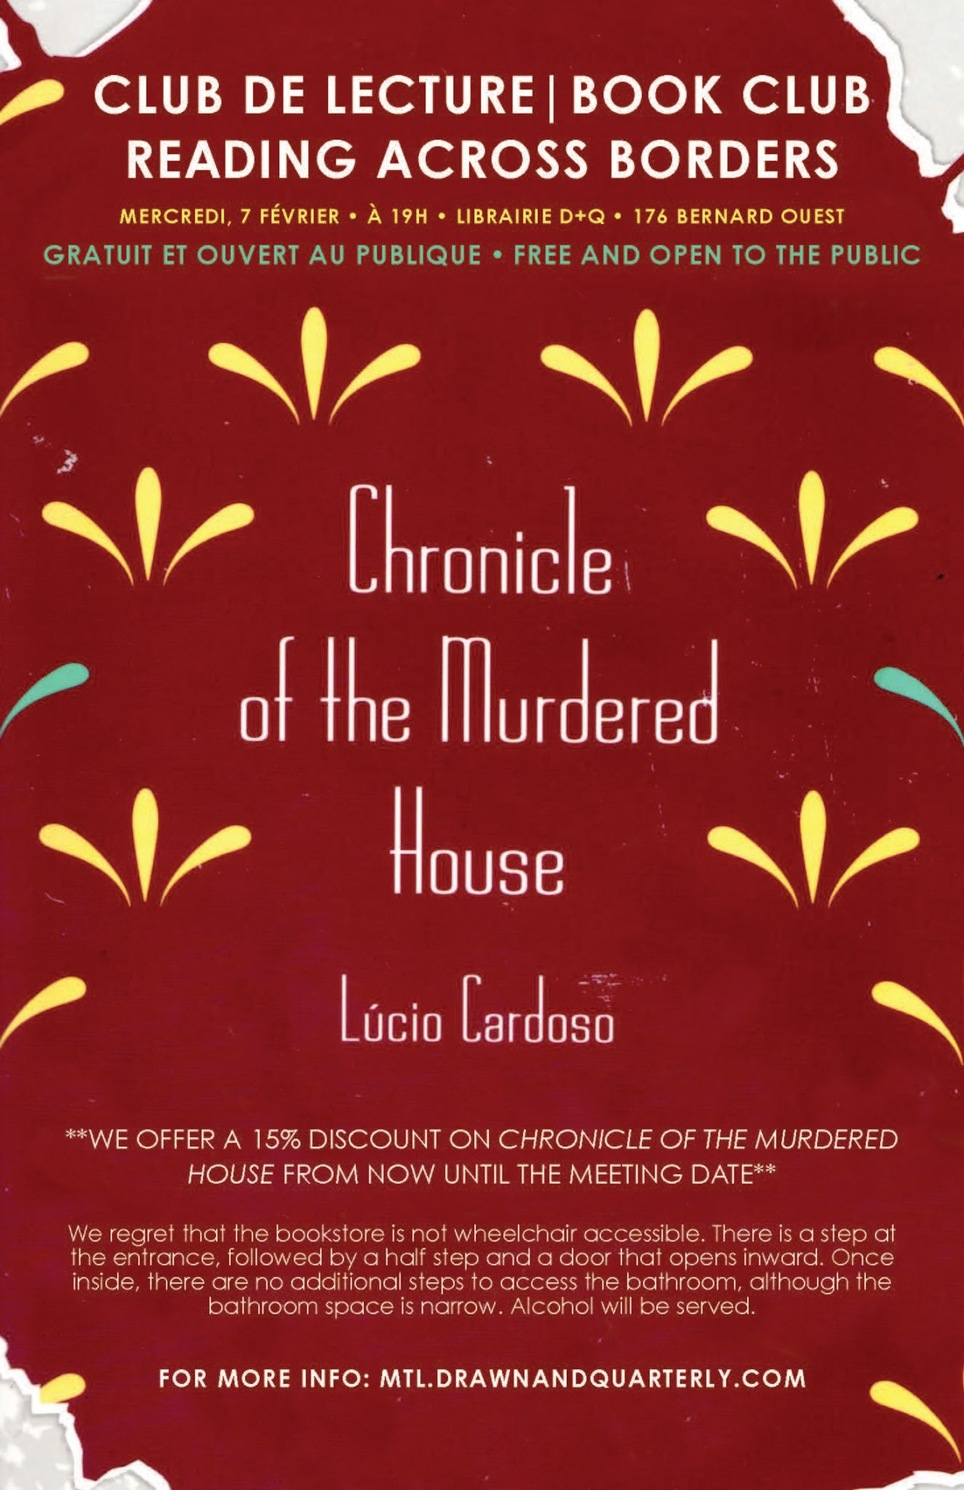 Reading Across Boarders Book Club: Chronicle of the Murdered House by Lúcio Cardoso